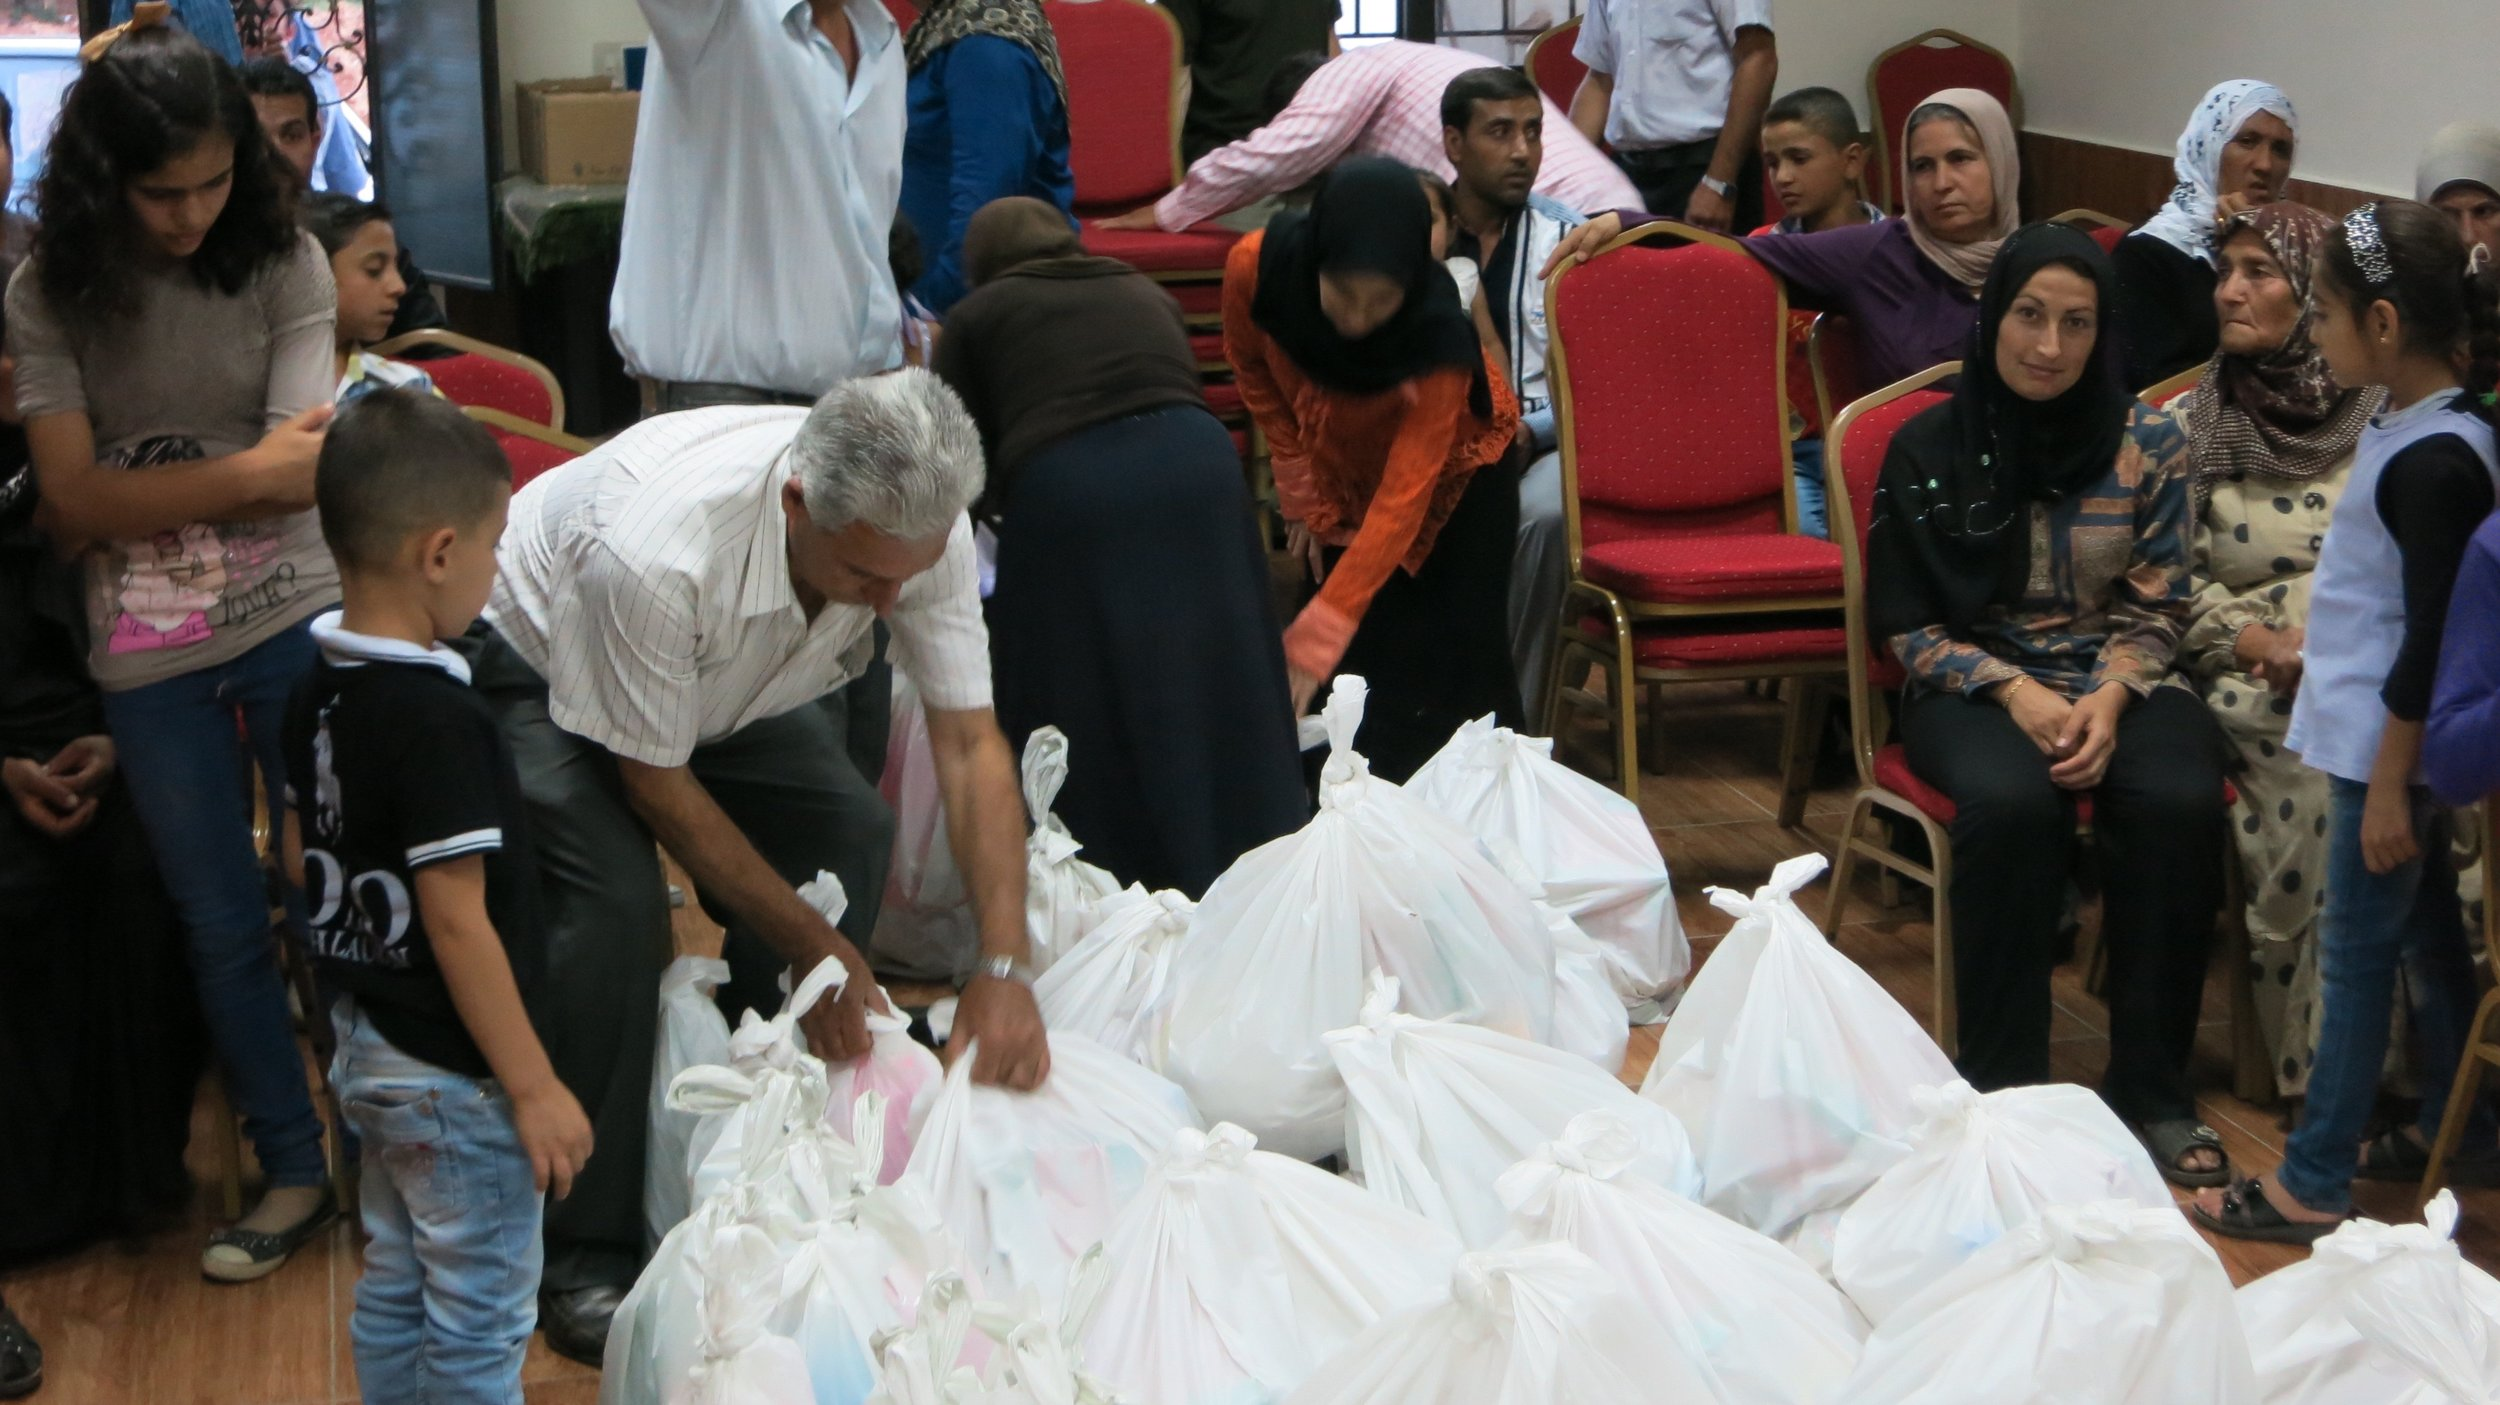 Refugees receive food and aid parcels from at the Call of Hope Center in Lebanon